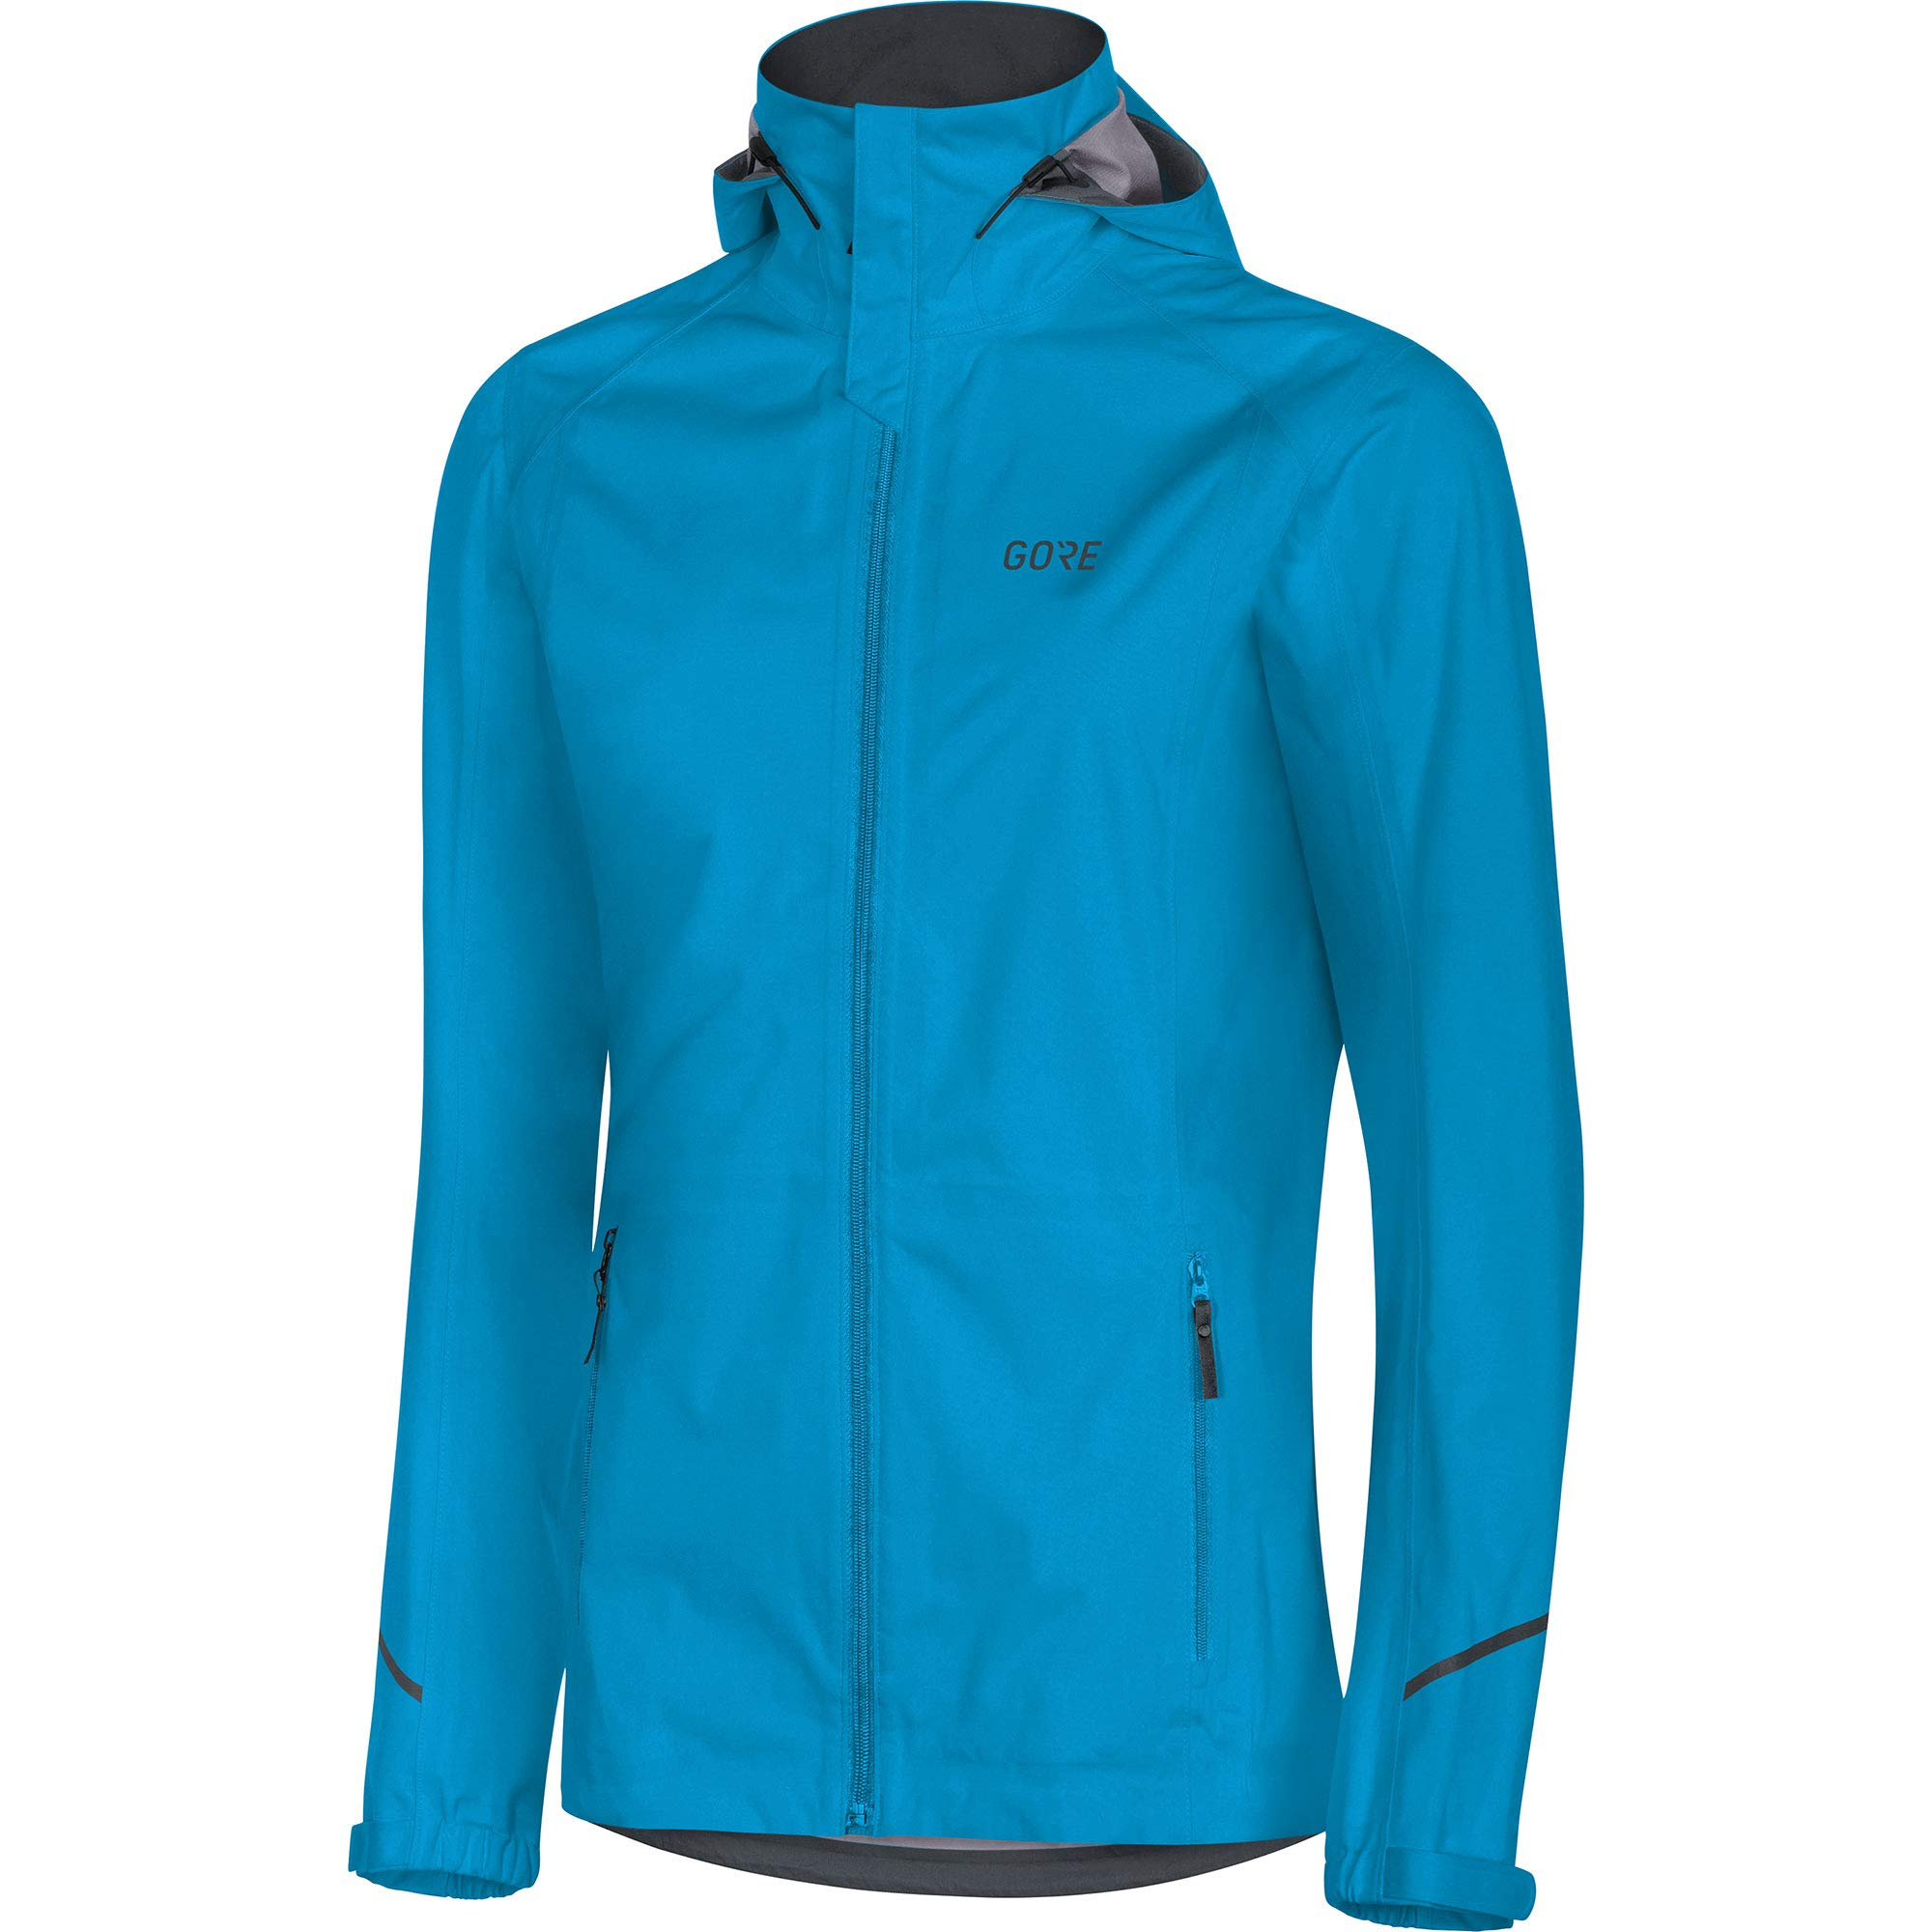 GORE Wear R3 Ladies Hooded Jacket GORE-TEX Active, XS, Blue